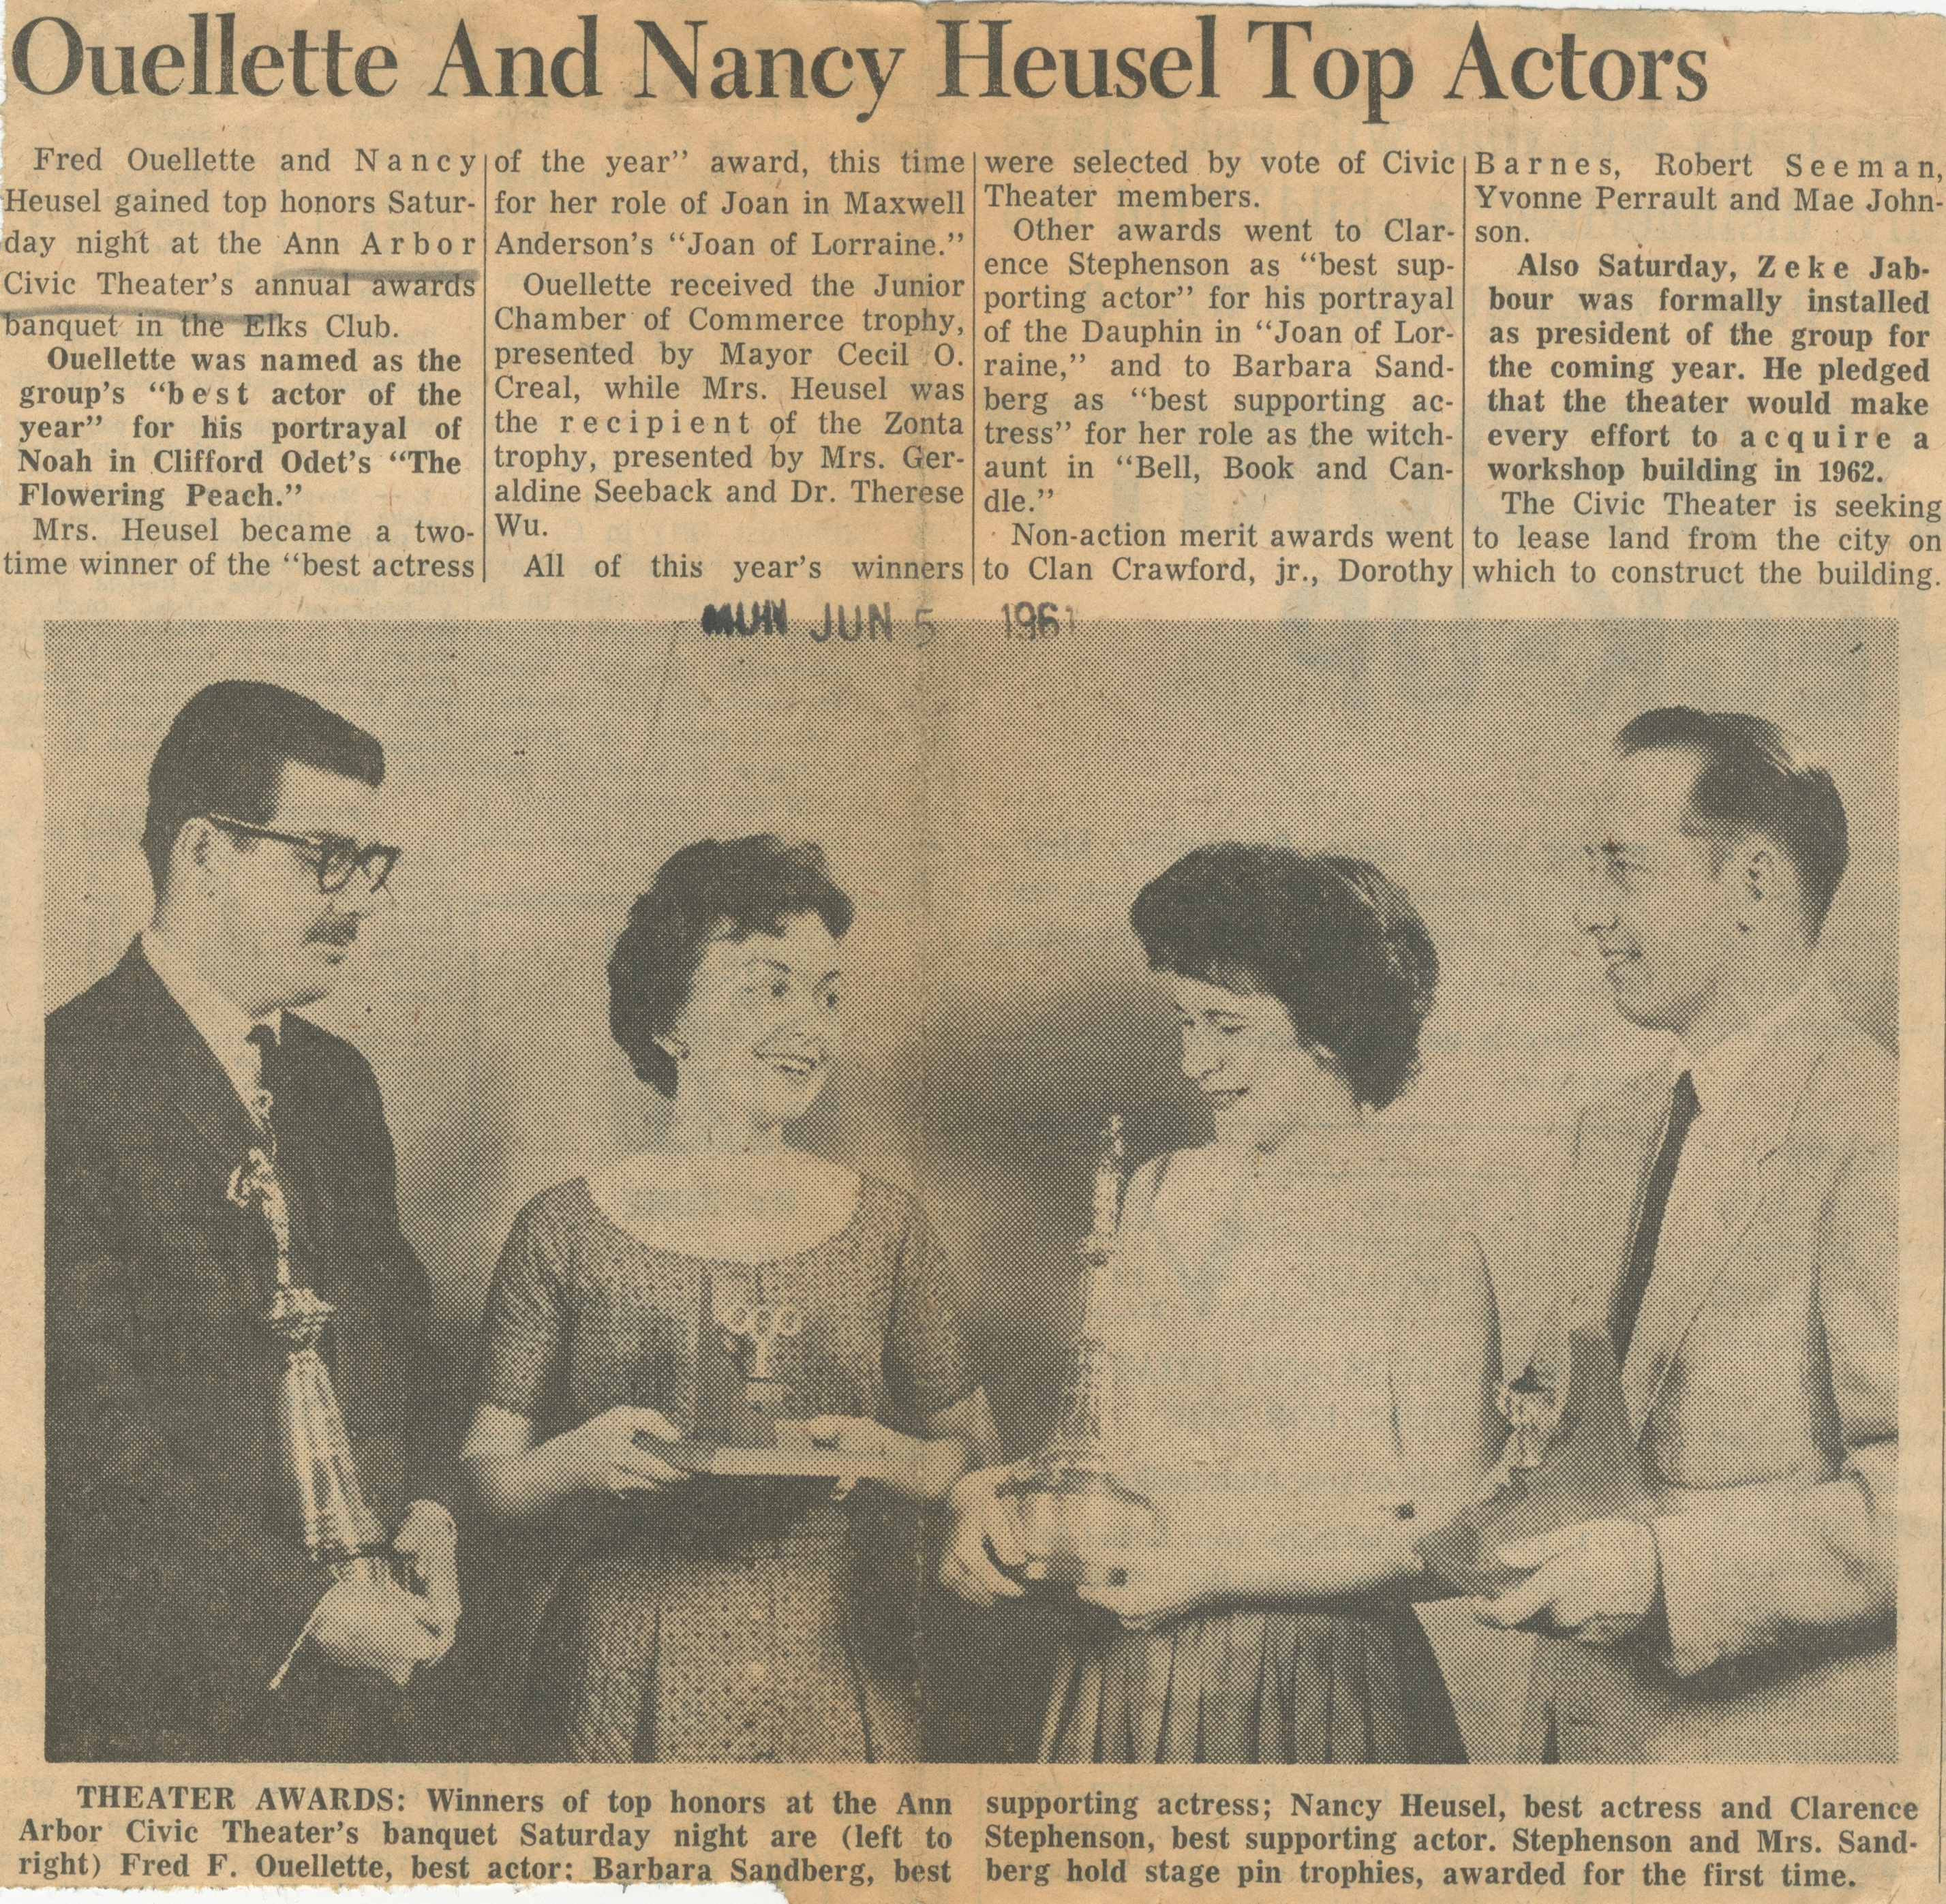 Ouellette And Nancy Heusel Top Actors image